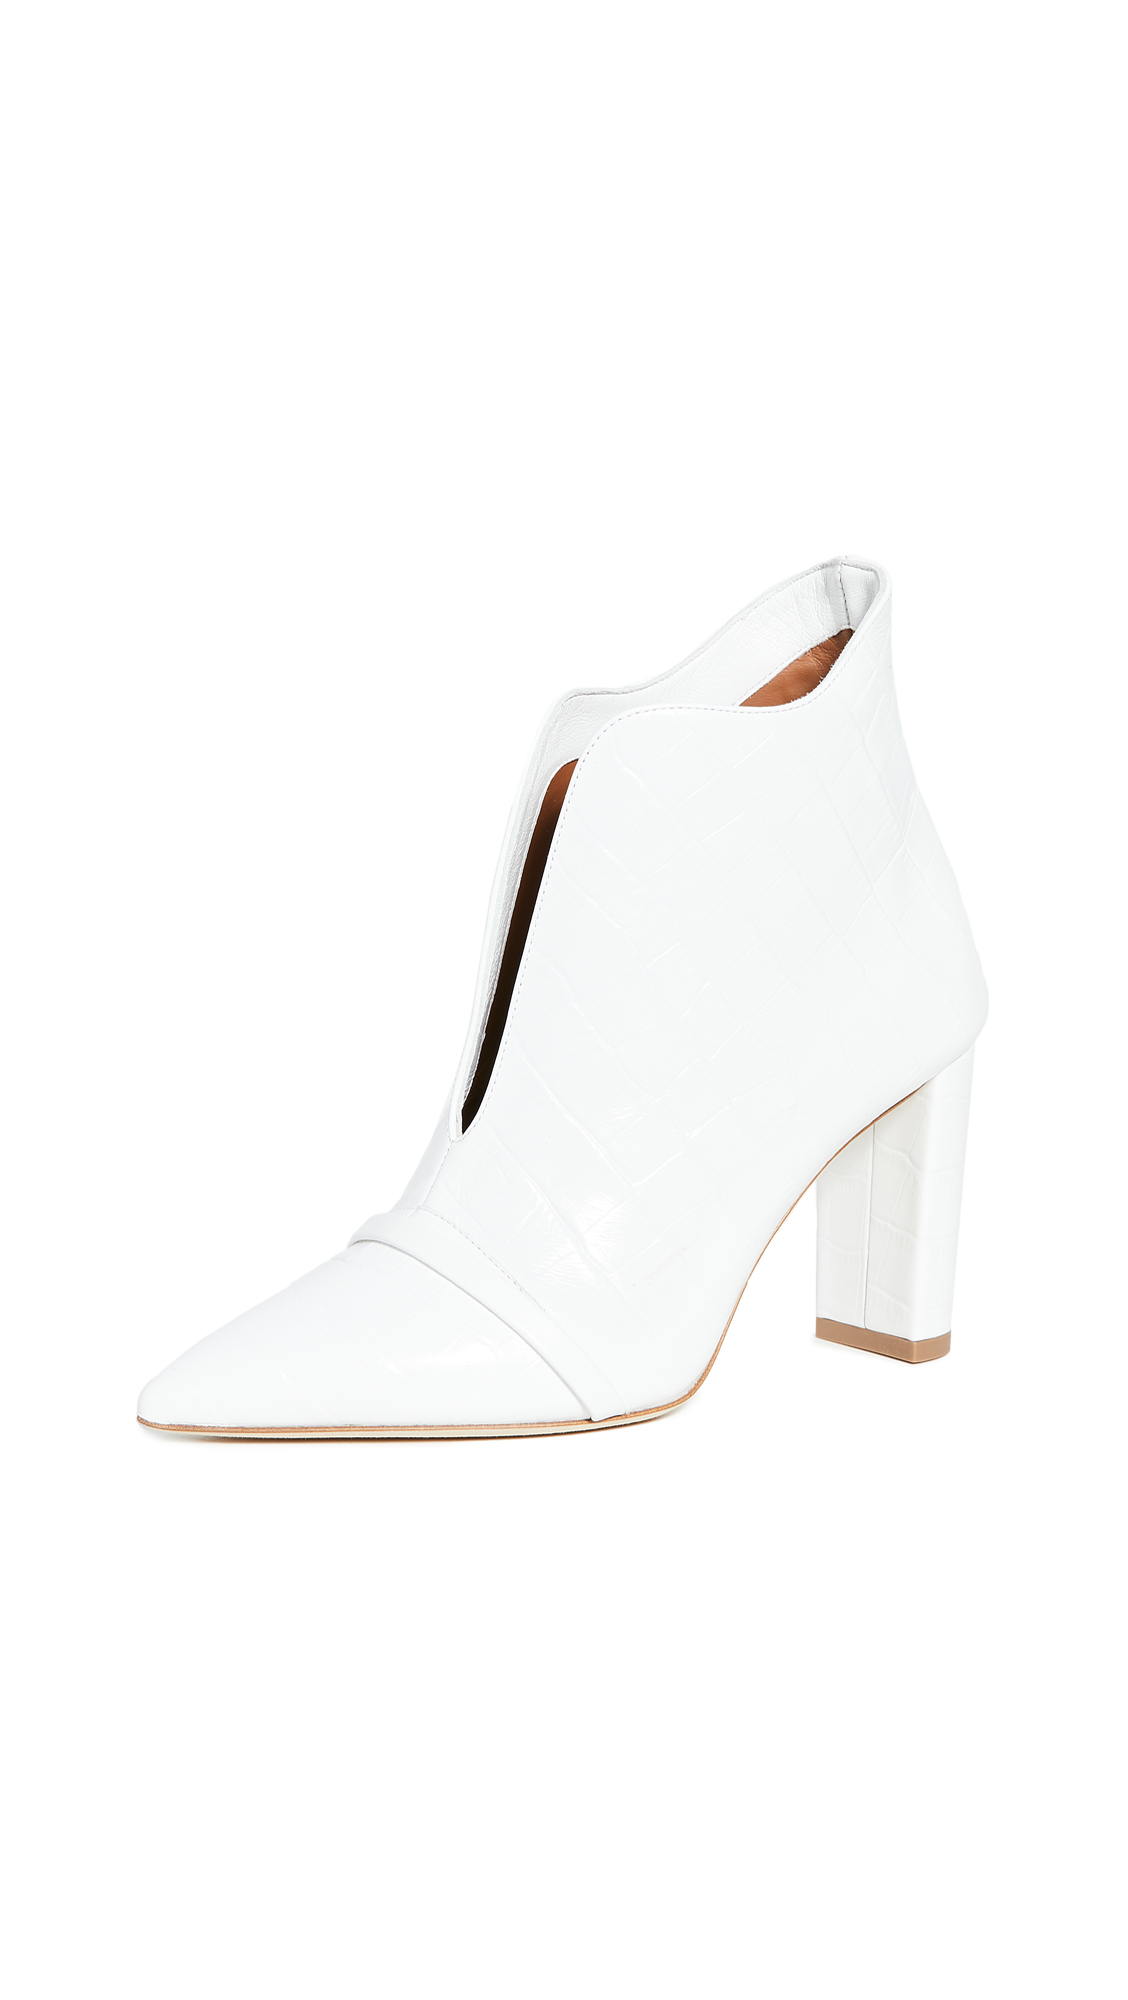 Buy Malone Souliers Clara Booties 85mm online, shop Malone Souliers